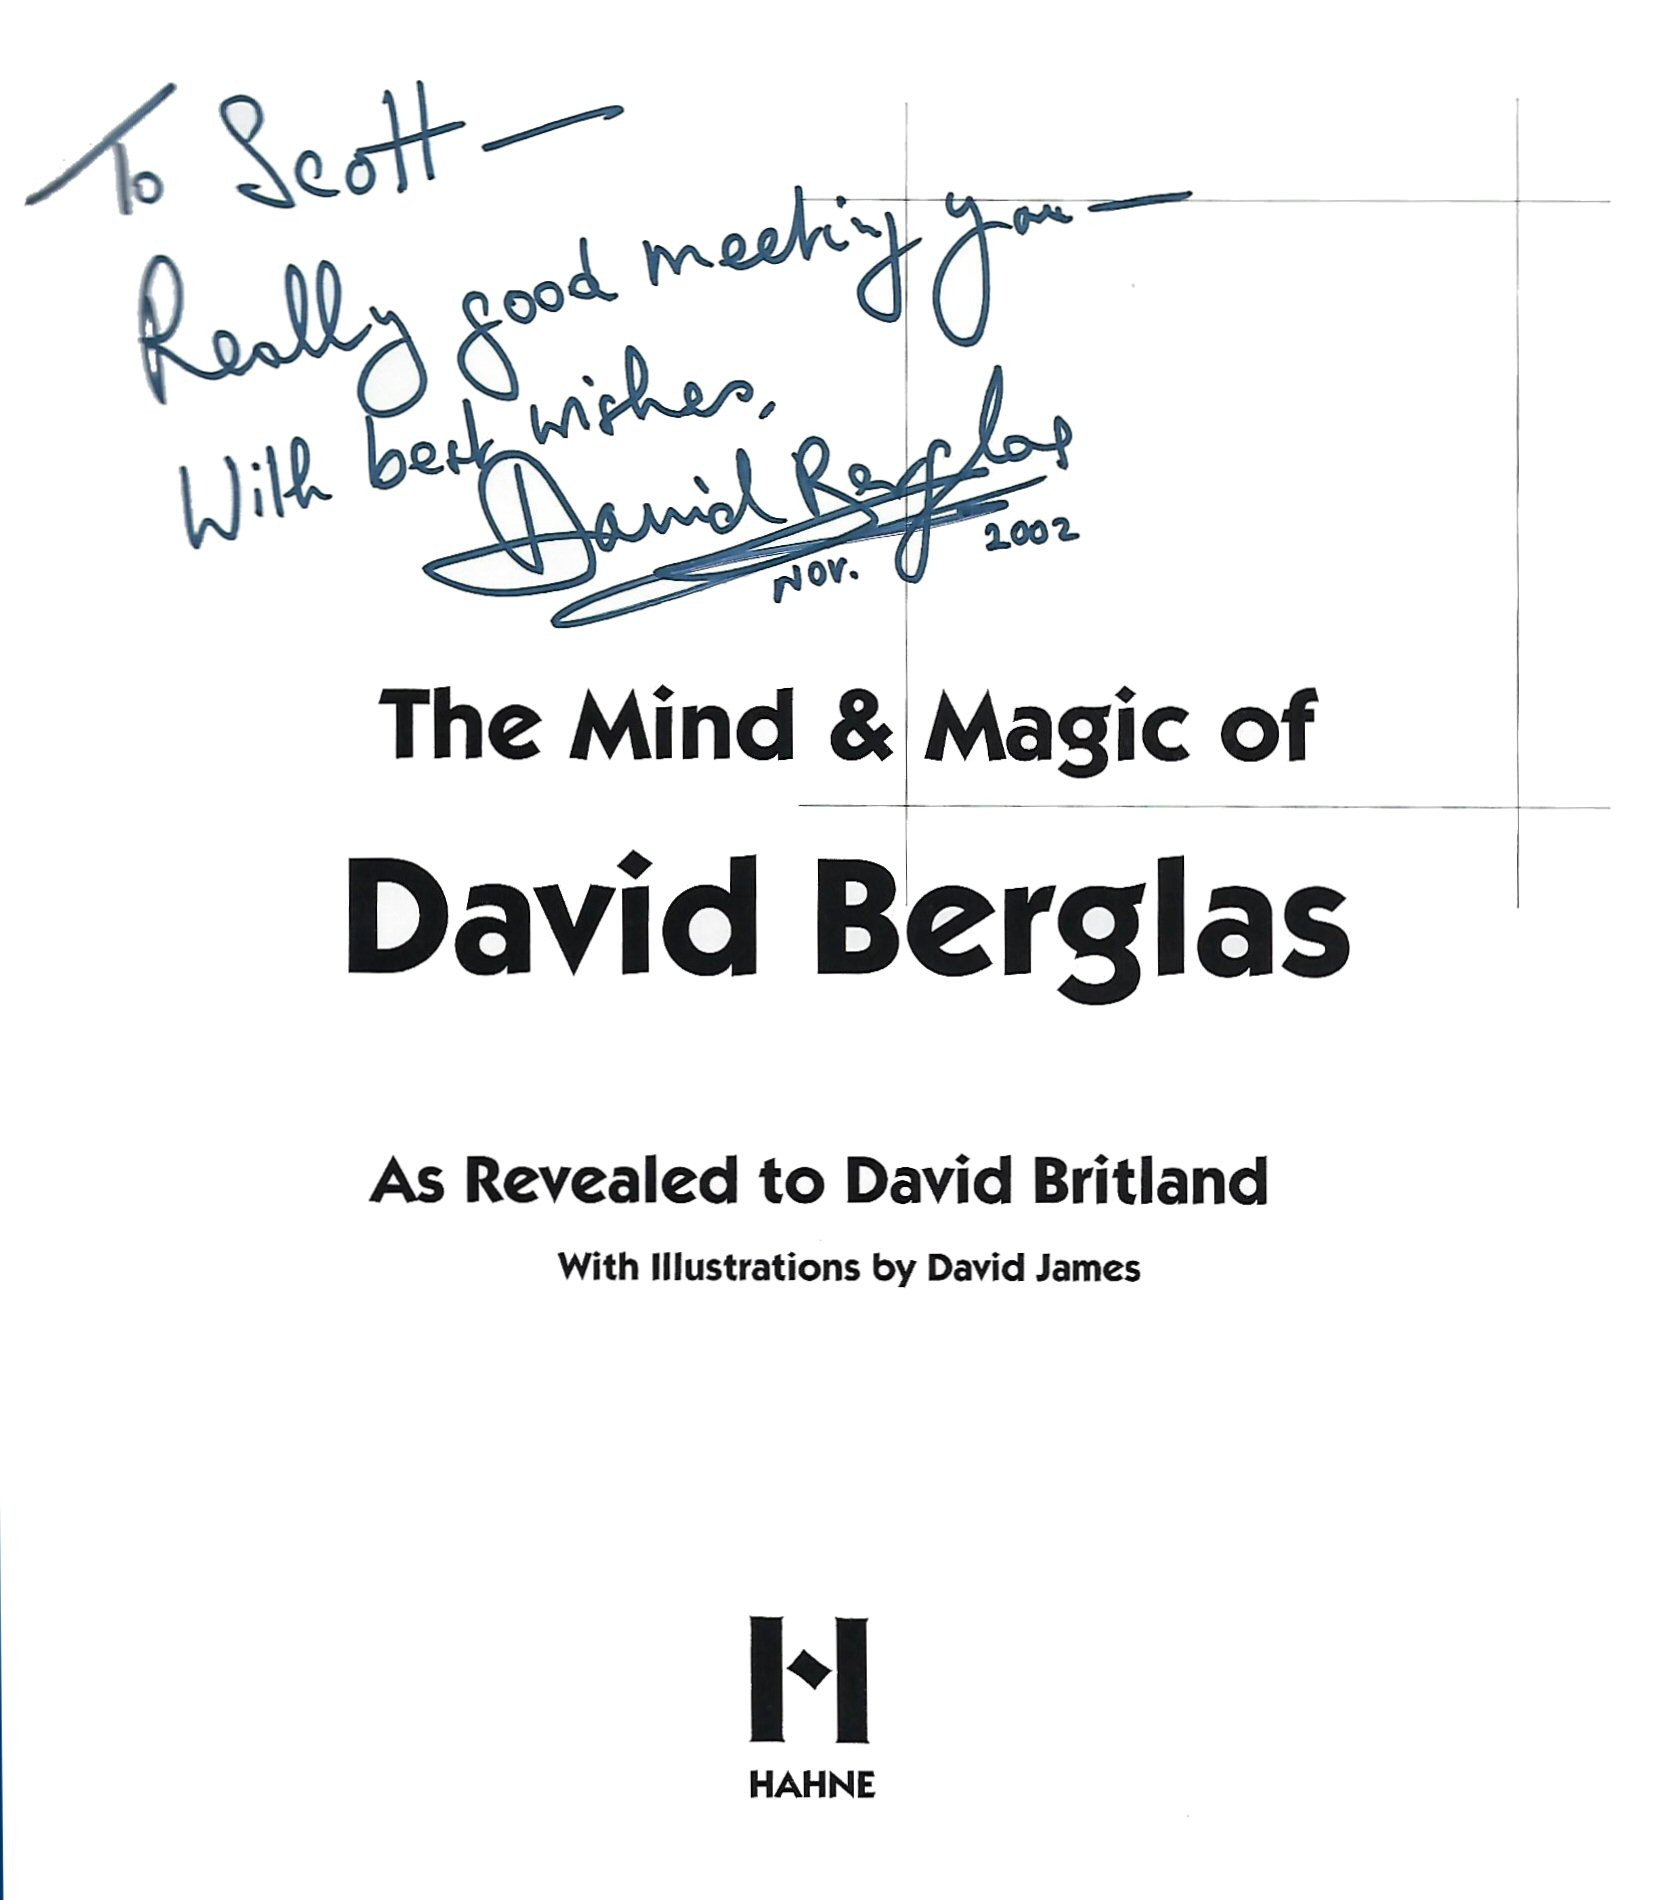 """Autograph in frontice piece of """"The Mind & Magic of David Berglas"""""""